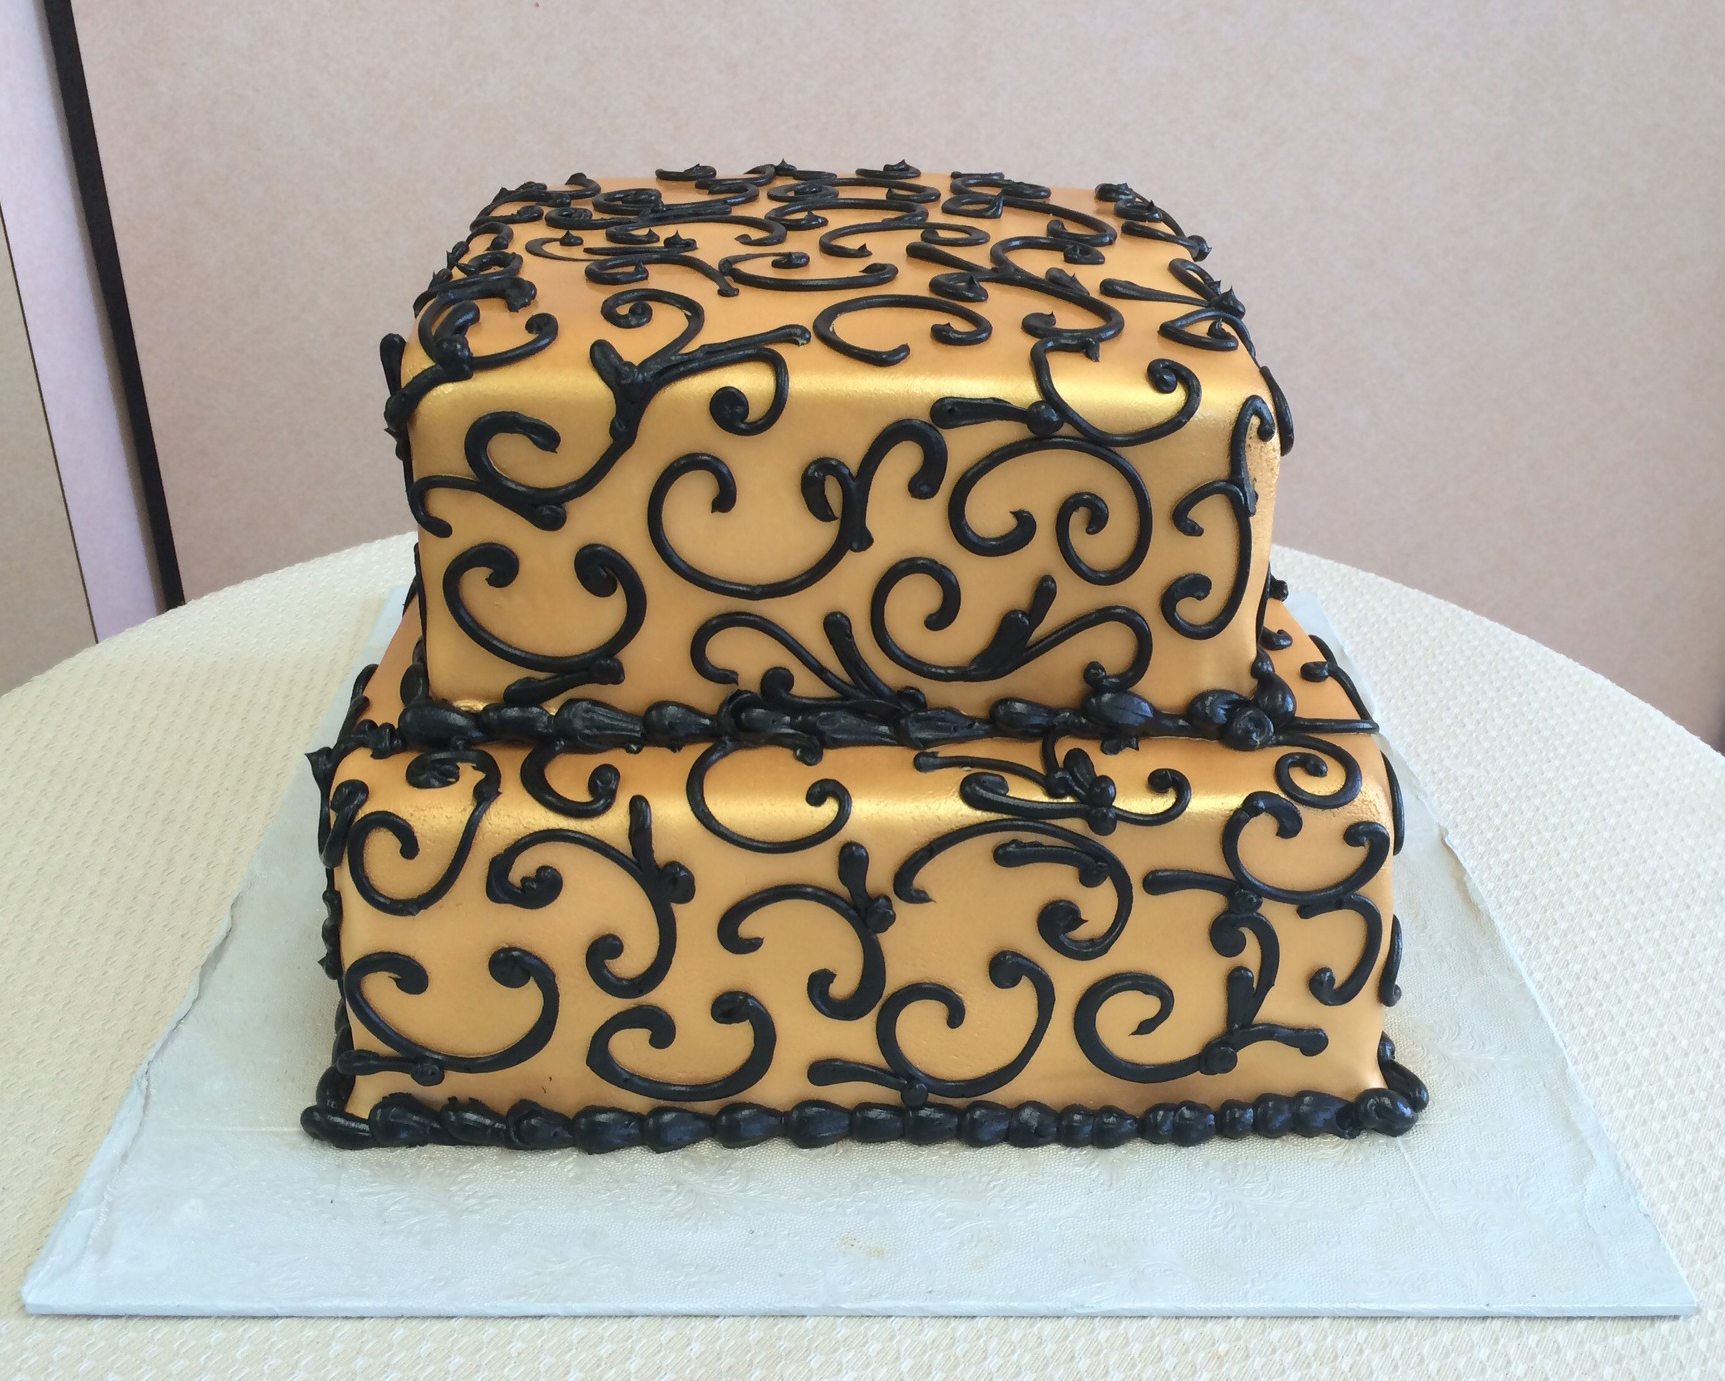 35 with Gold Rolled Fondant and Black Scrolls